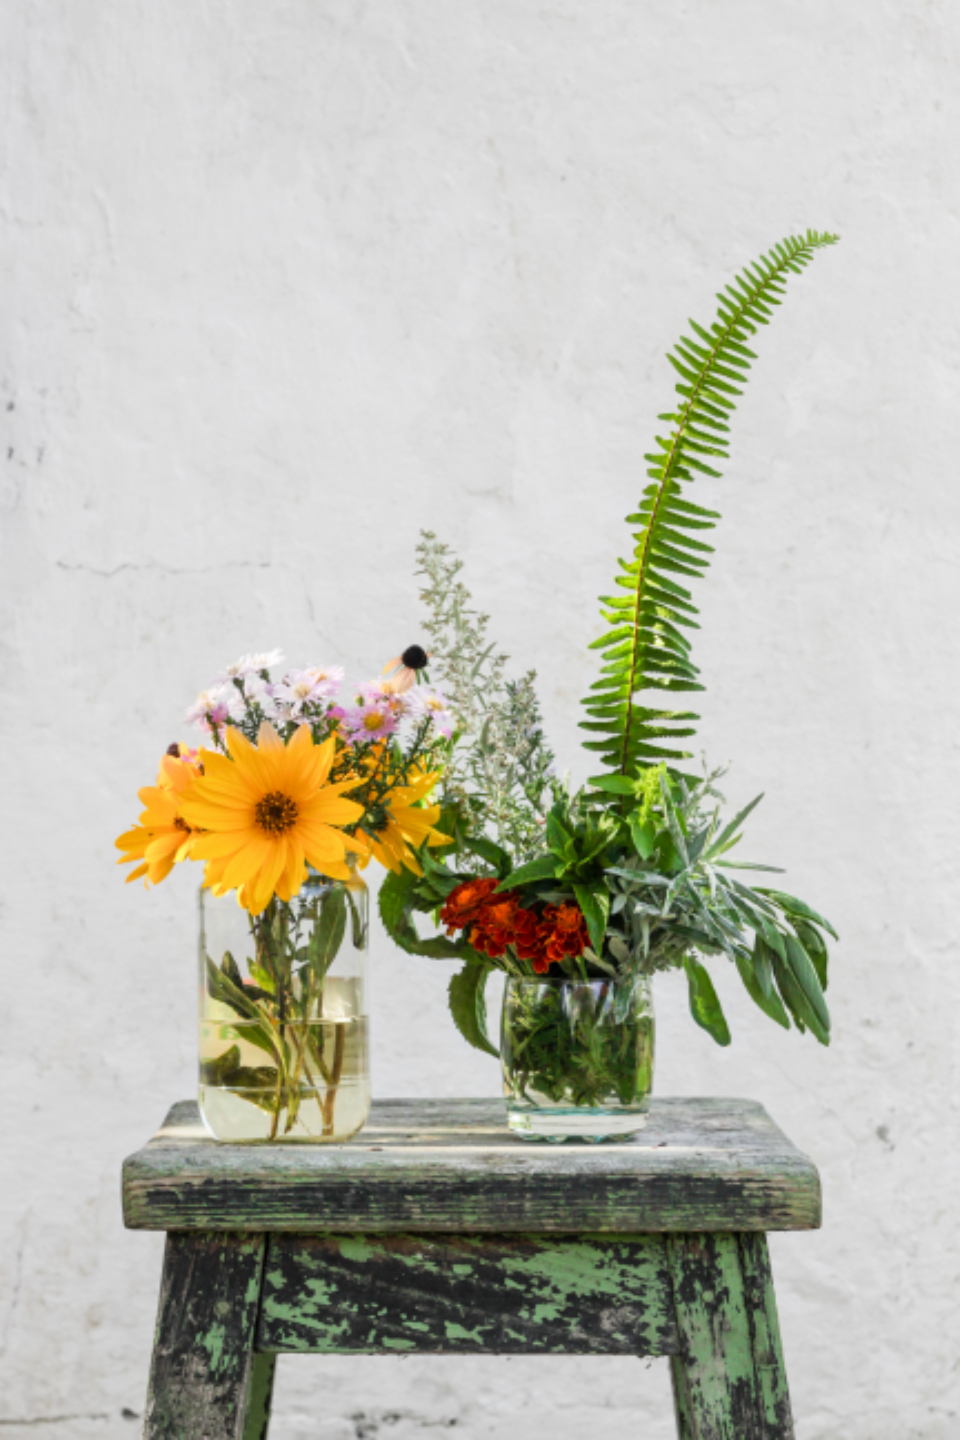 rustic flower arrangement vase background texture bouquet fresh garden summer spring natural organic seat beautiful bloom blossom botany composition decor design floral florist harvest